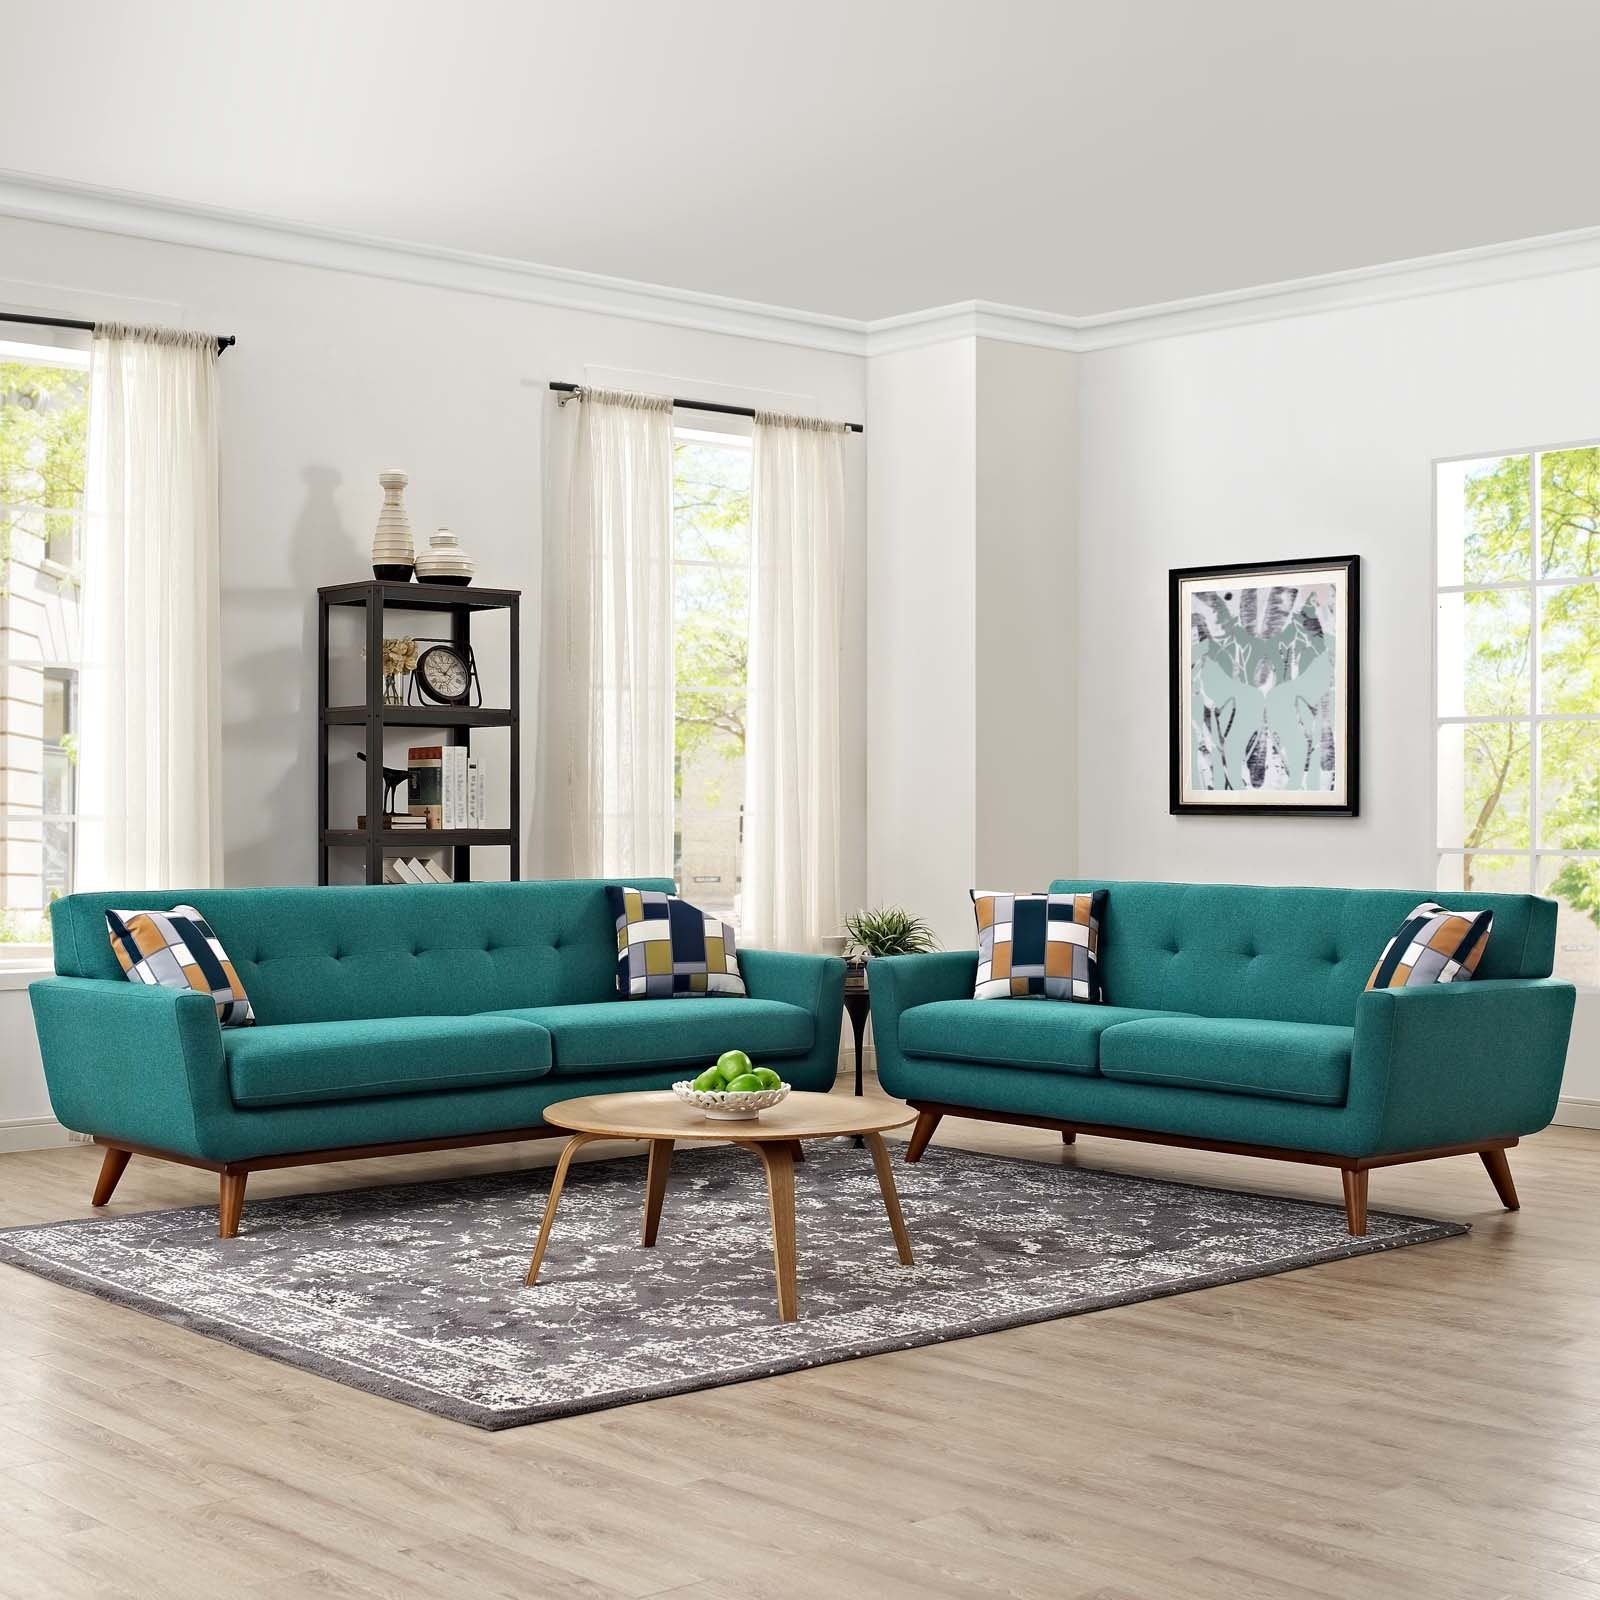 Engage Loveseat and Sofa Set of 2 - Teal